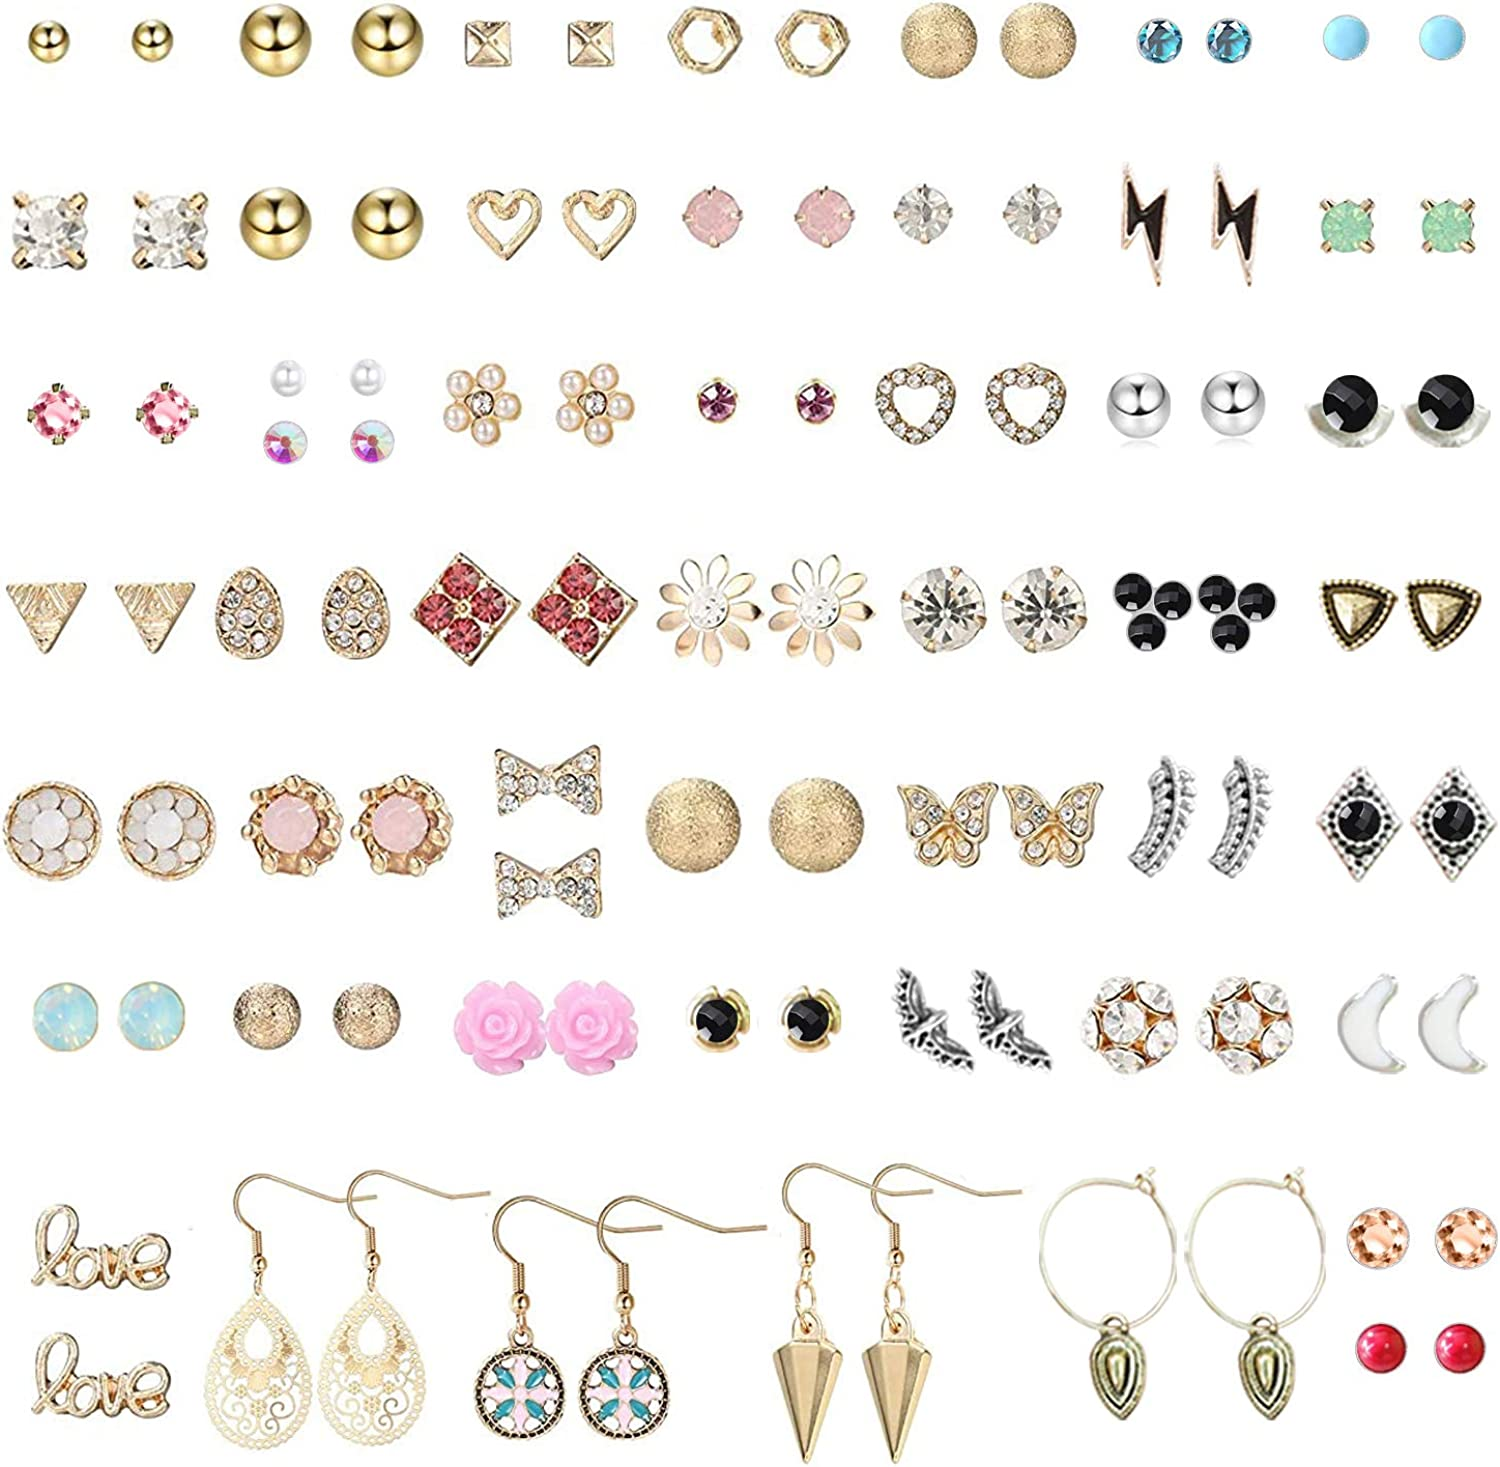 Subiceto 51 Pairs Stainless Steel Stud Earrings for Girls Assorted Cute Animal Flower Unicorn Mixed Color Earrings Pack